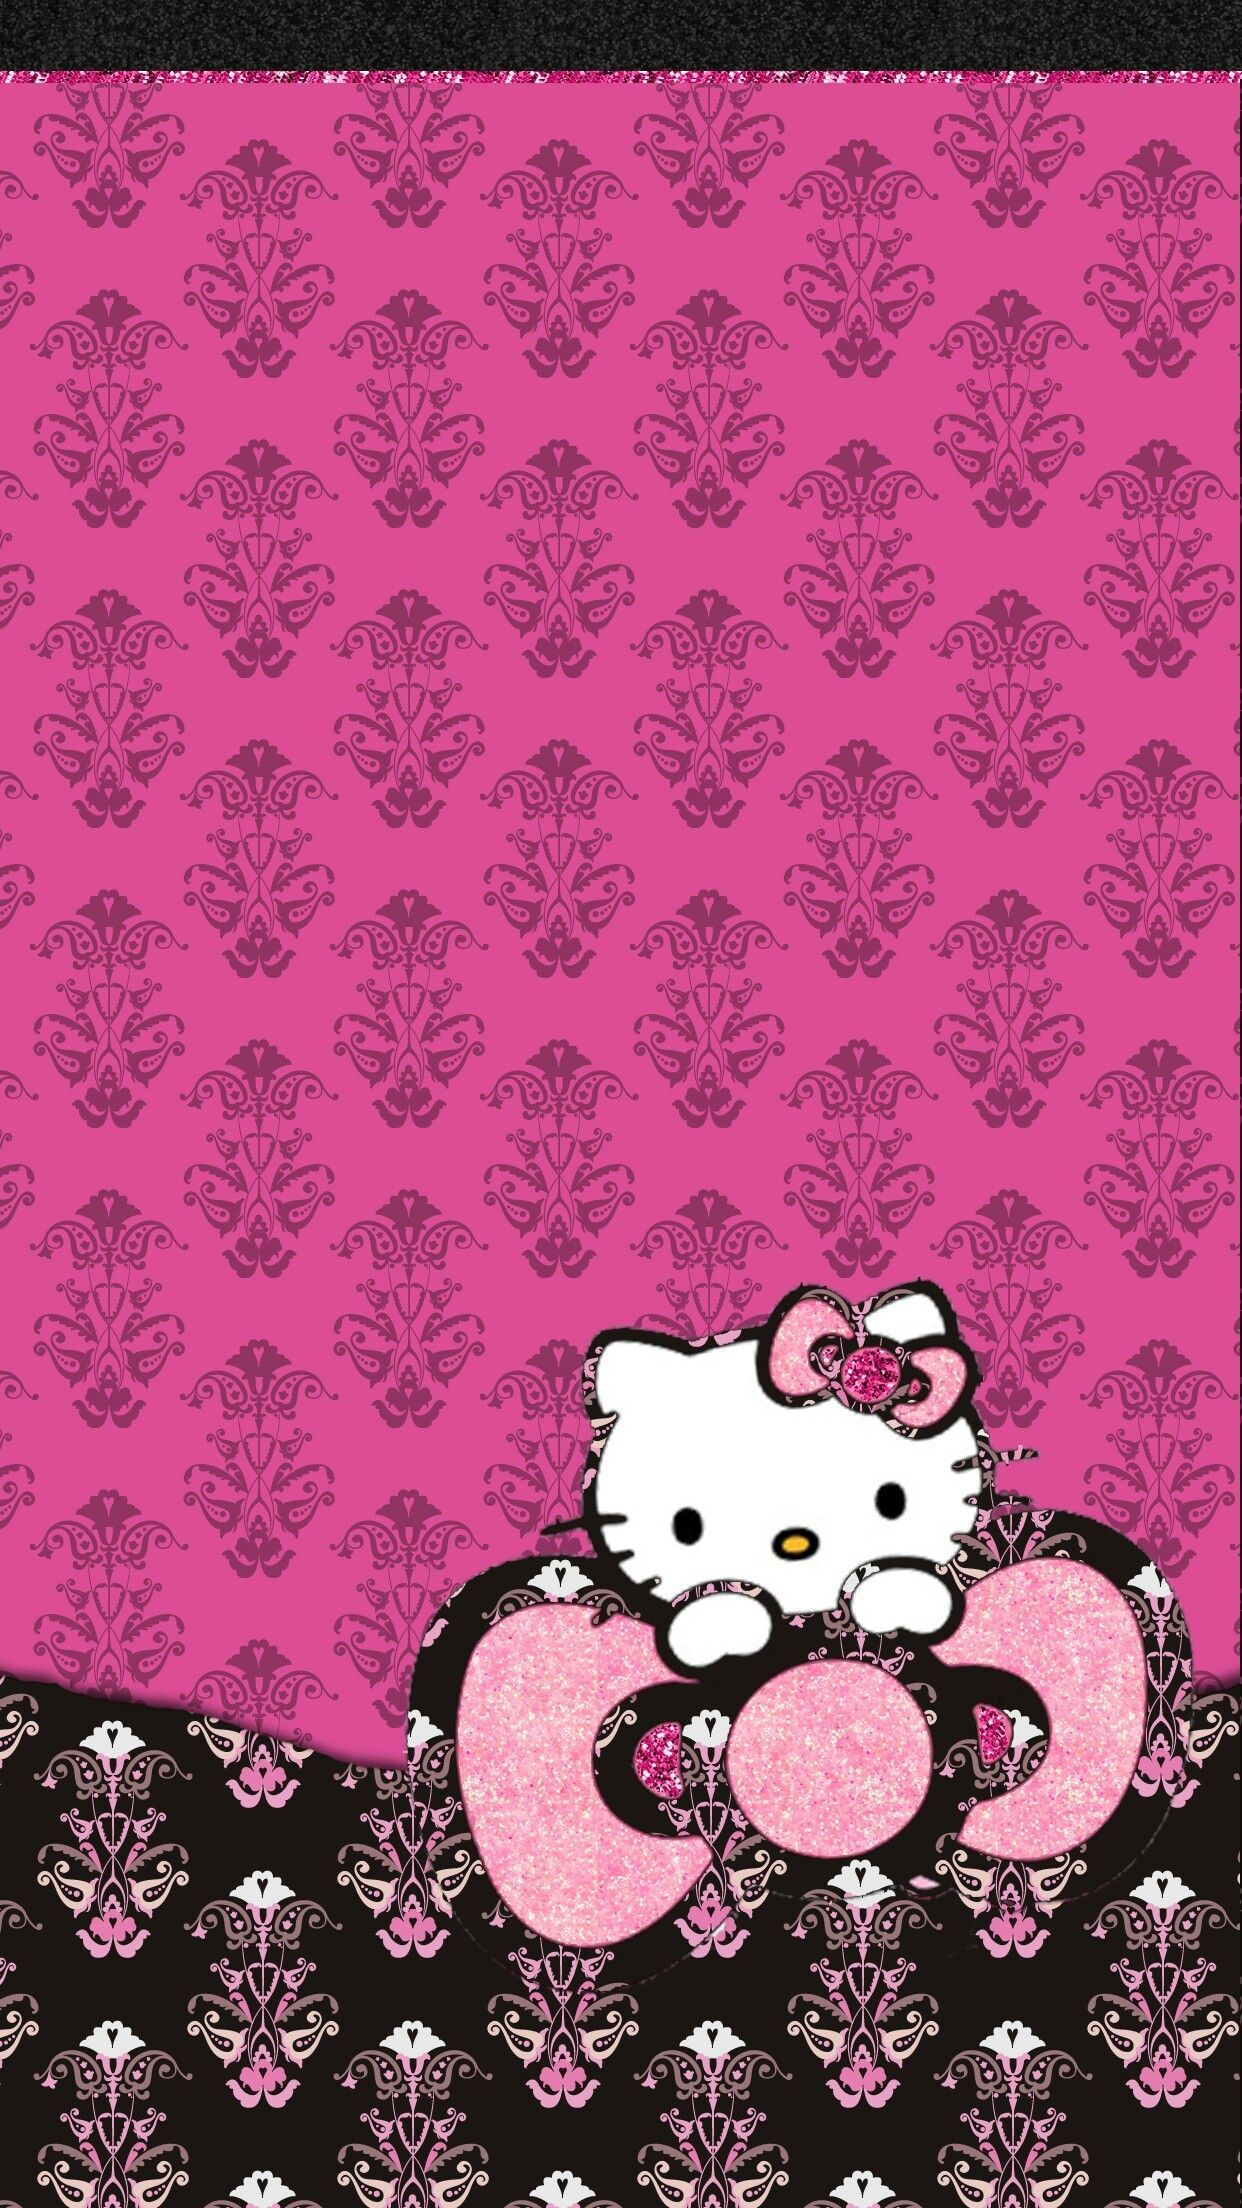 Pink Hello Kitty Wallpapers - Los mejores fondos de Pink Hello Kitty gratis